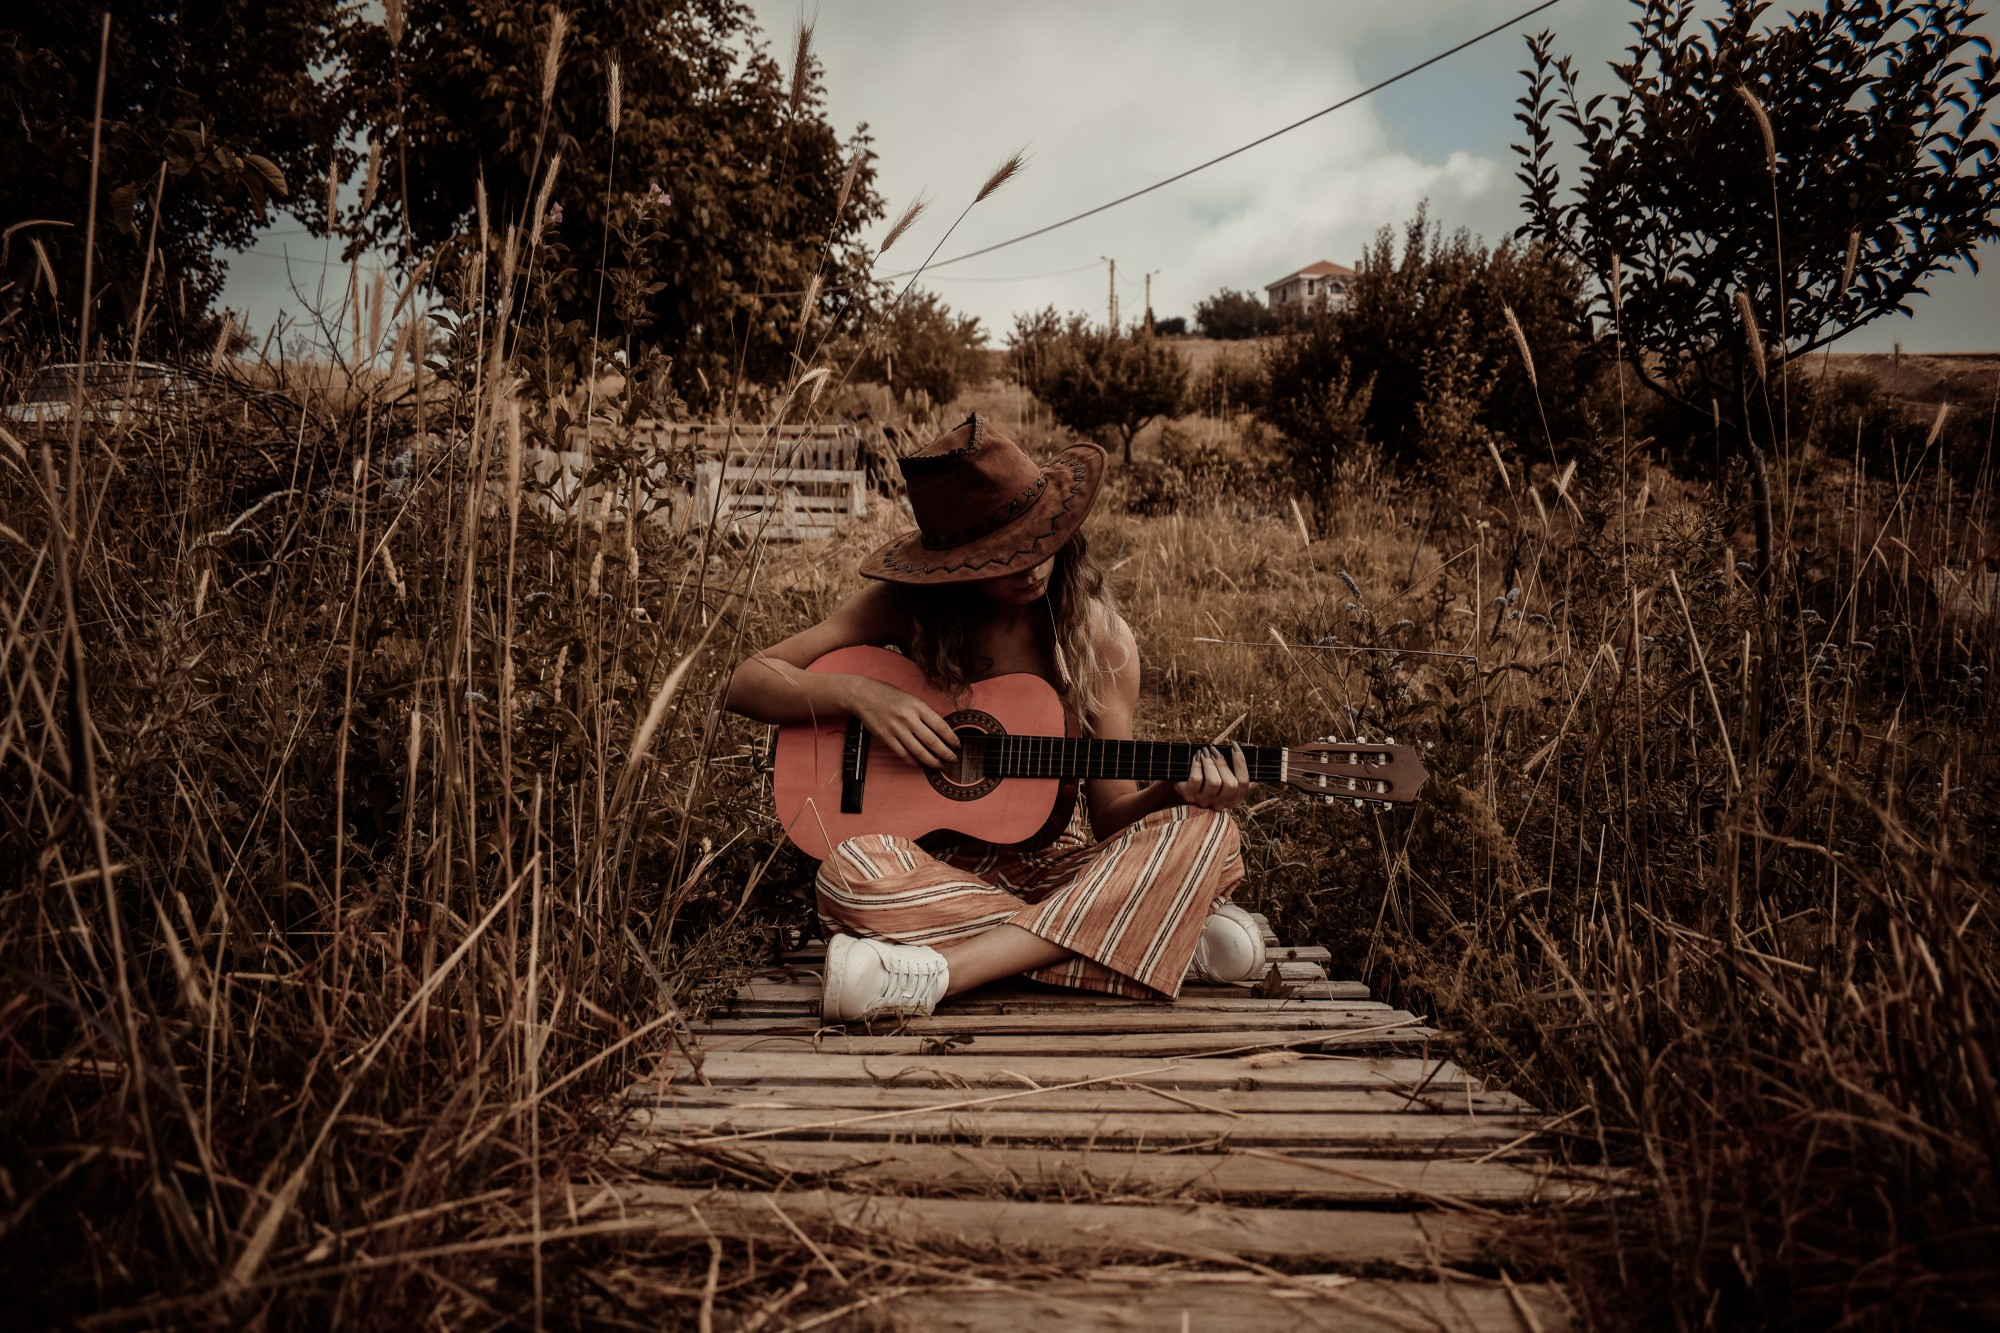 Woman sitting on ground playing guitar